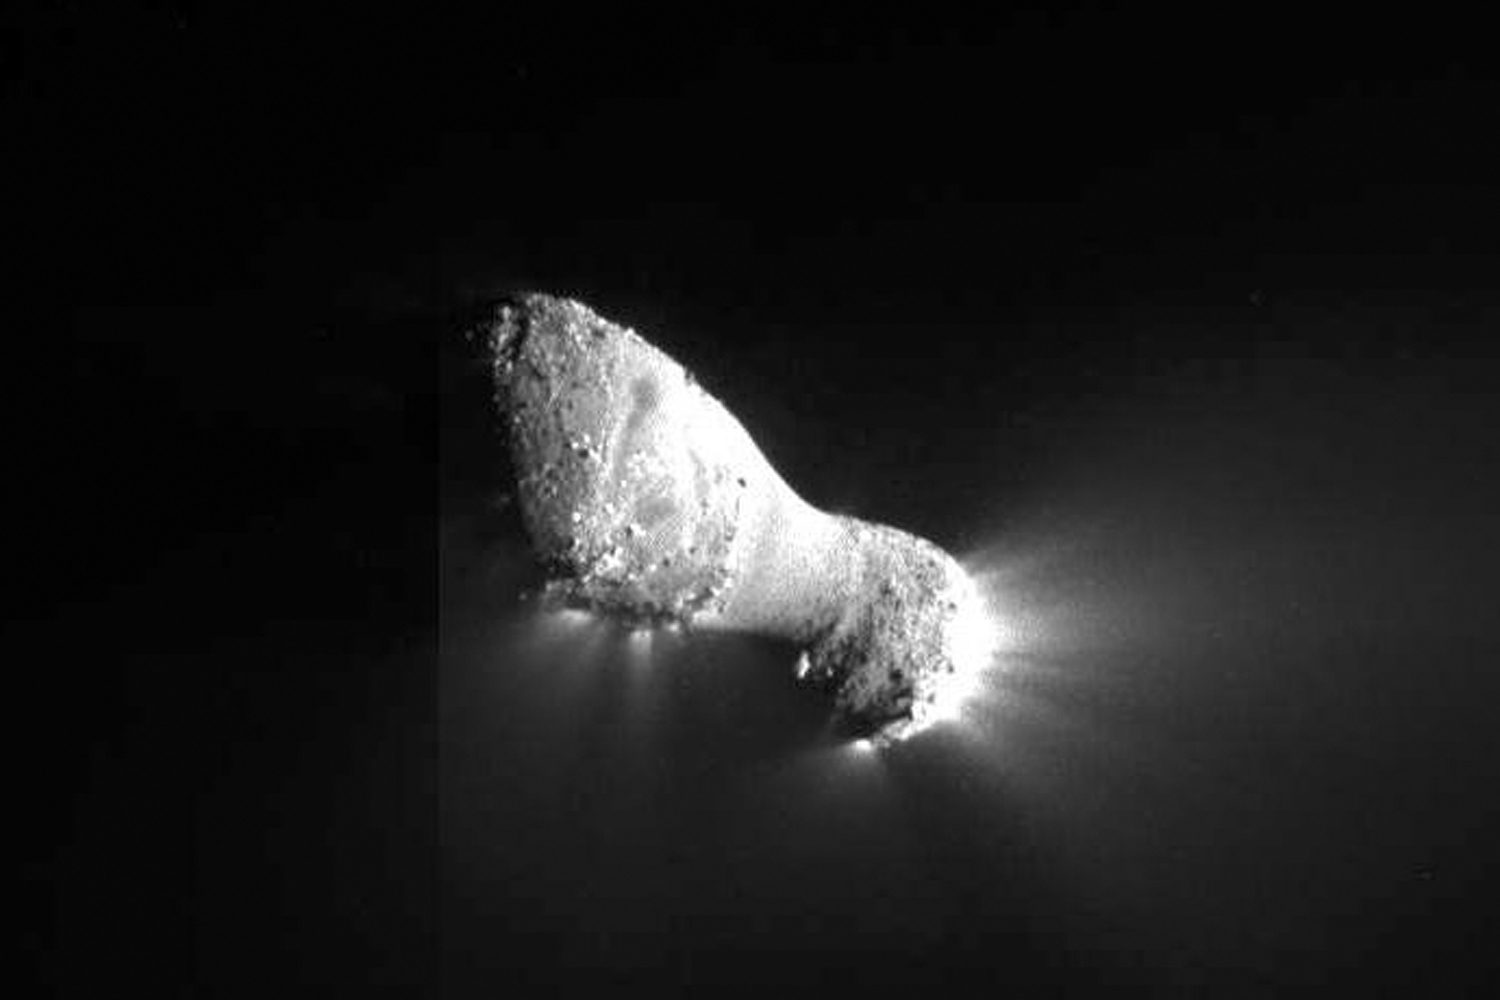 Comet Hartley 2 Photographed By NASA's EPOXI Mission